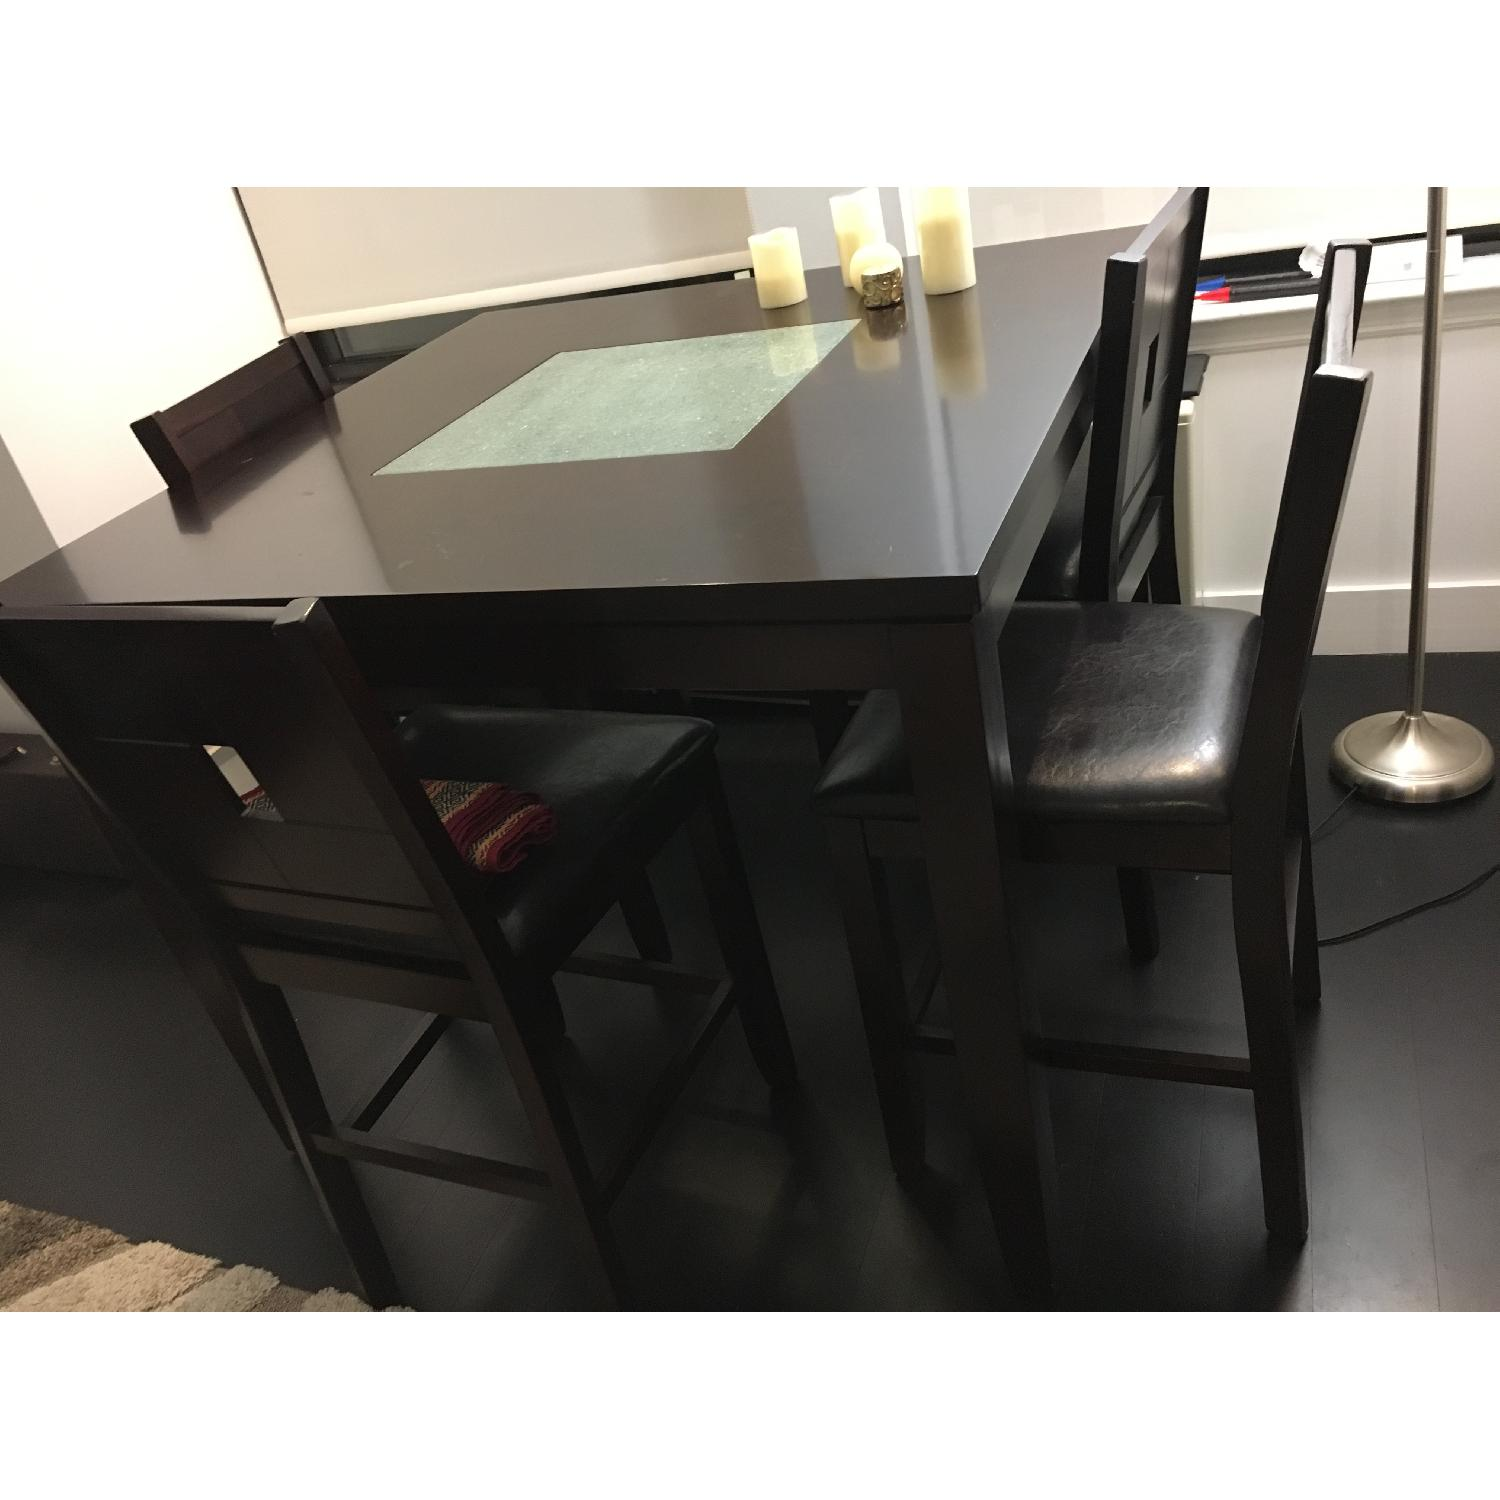 Dining Table w/ 4 Chairs + 1 Bench - image-10